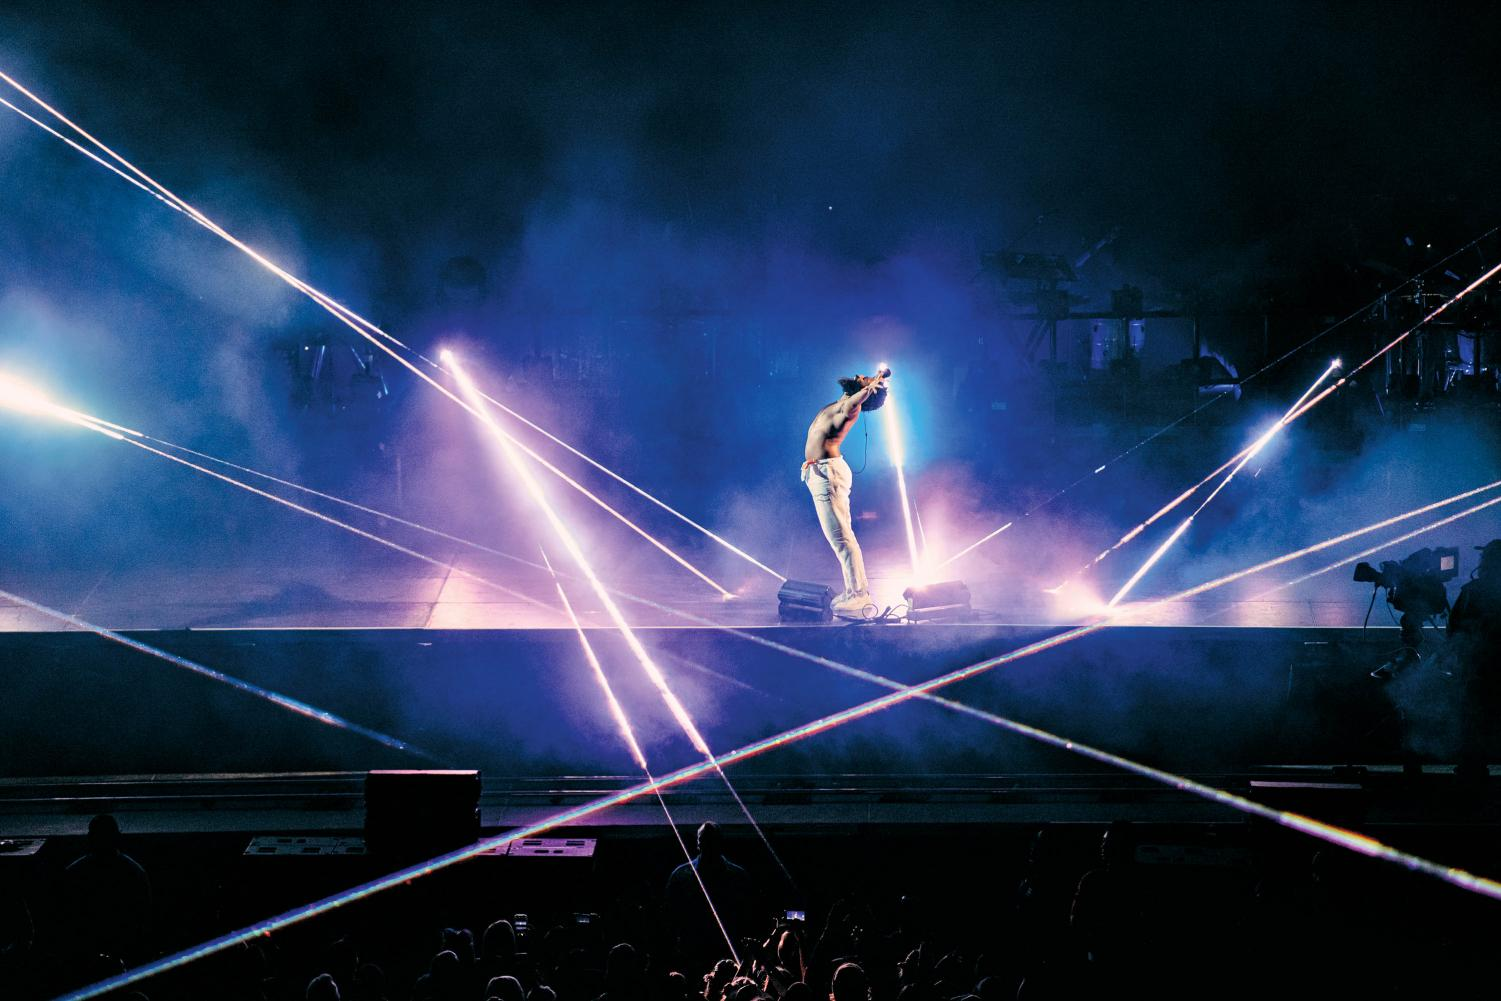 Childish Gambino's Austin City Limits set marked the end of his last live tour using the pseudonym. There is currently no plan for the unreleased songs Gambino peformed during the tour.